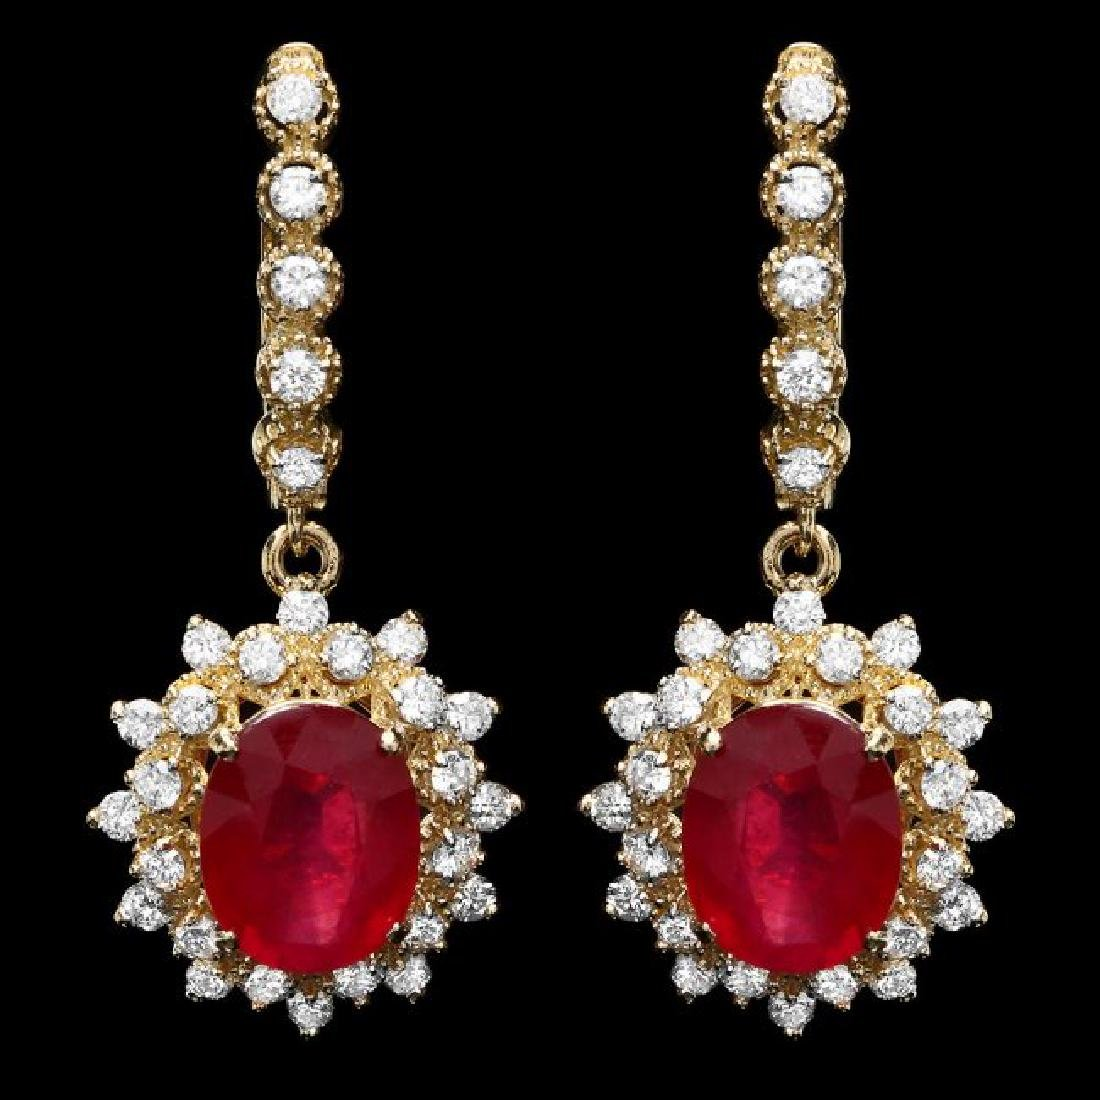 14k Gold 8.00ct Ruby 1.60ct Diamond Earrings